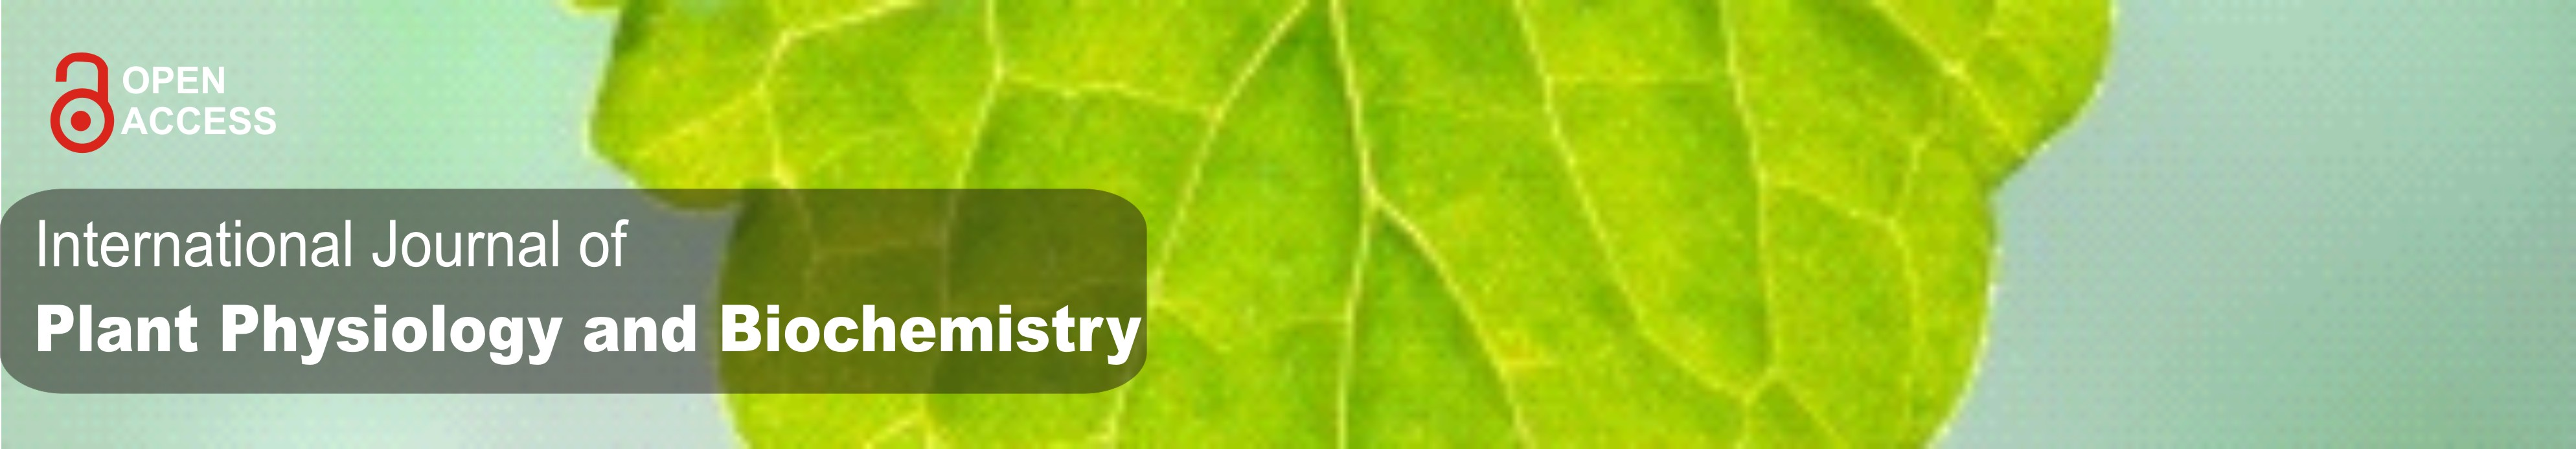 International Journal of Plant Physiology and Biochemistry